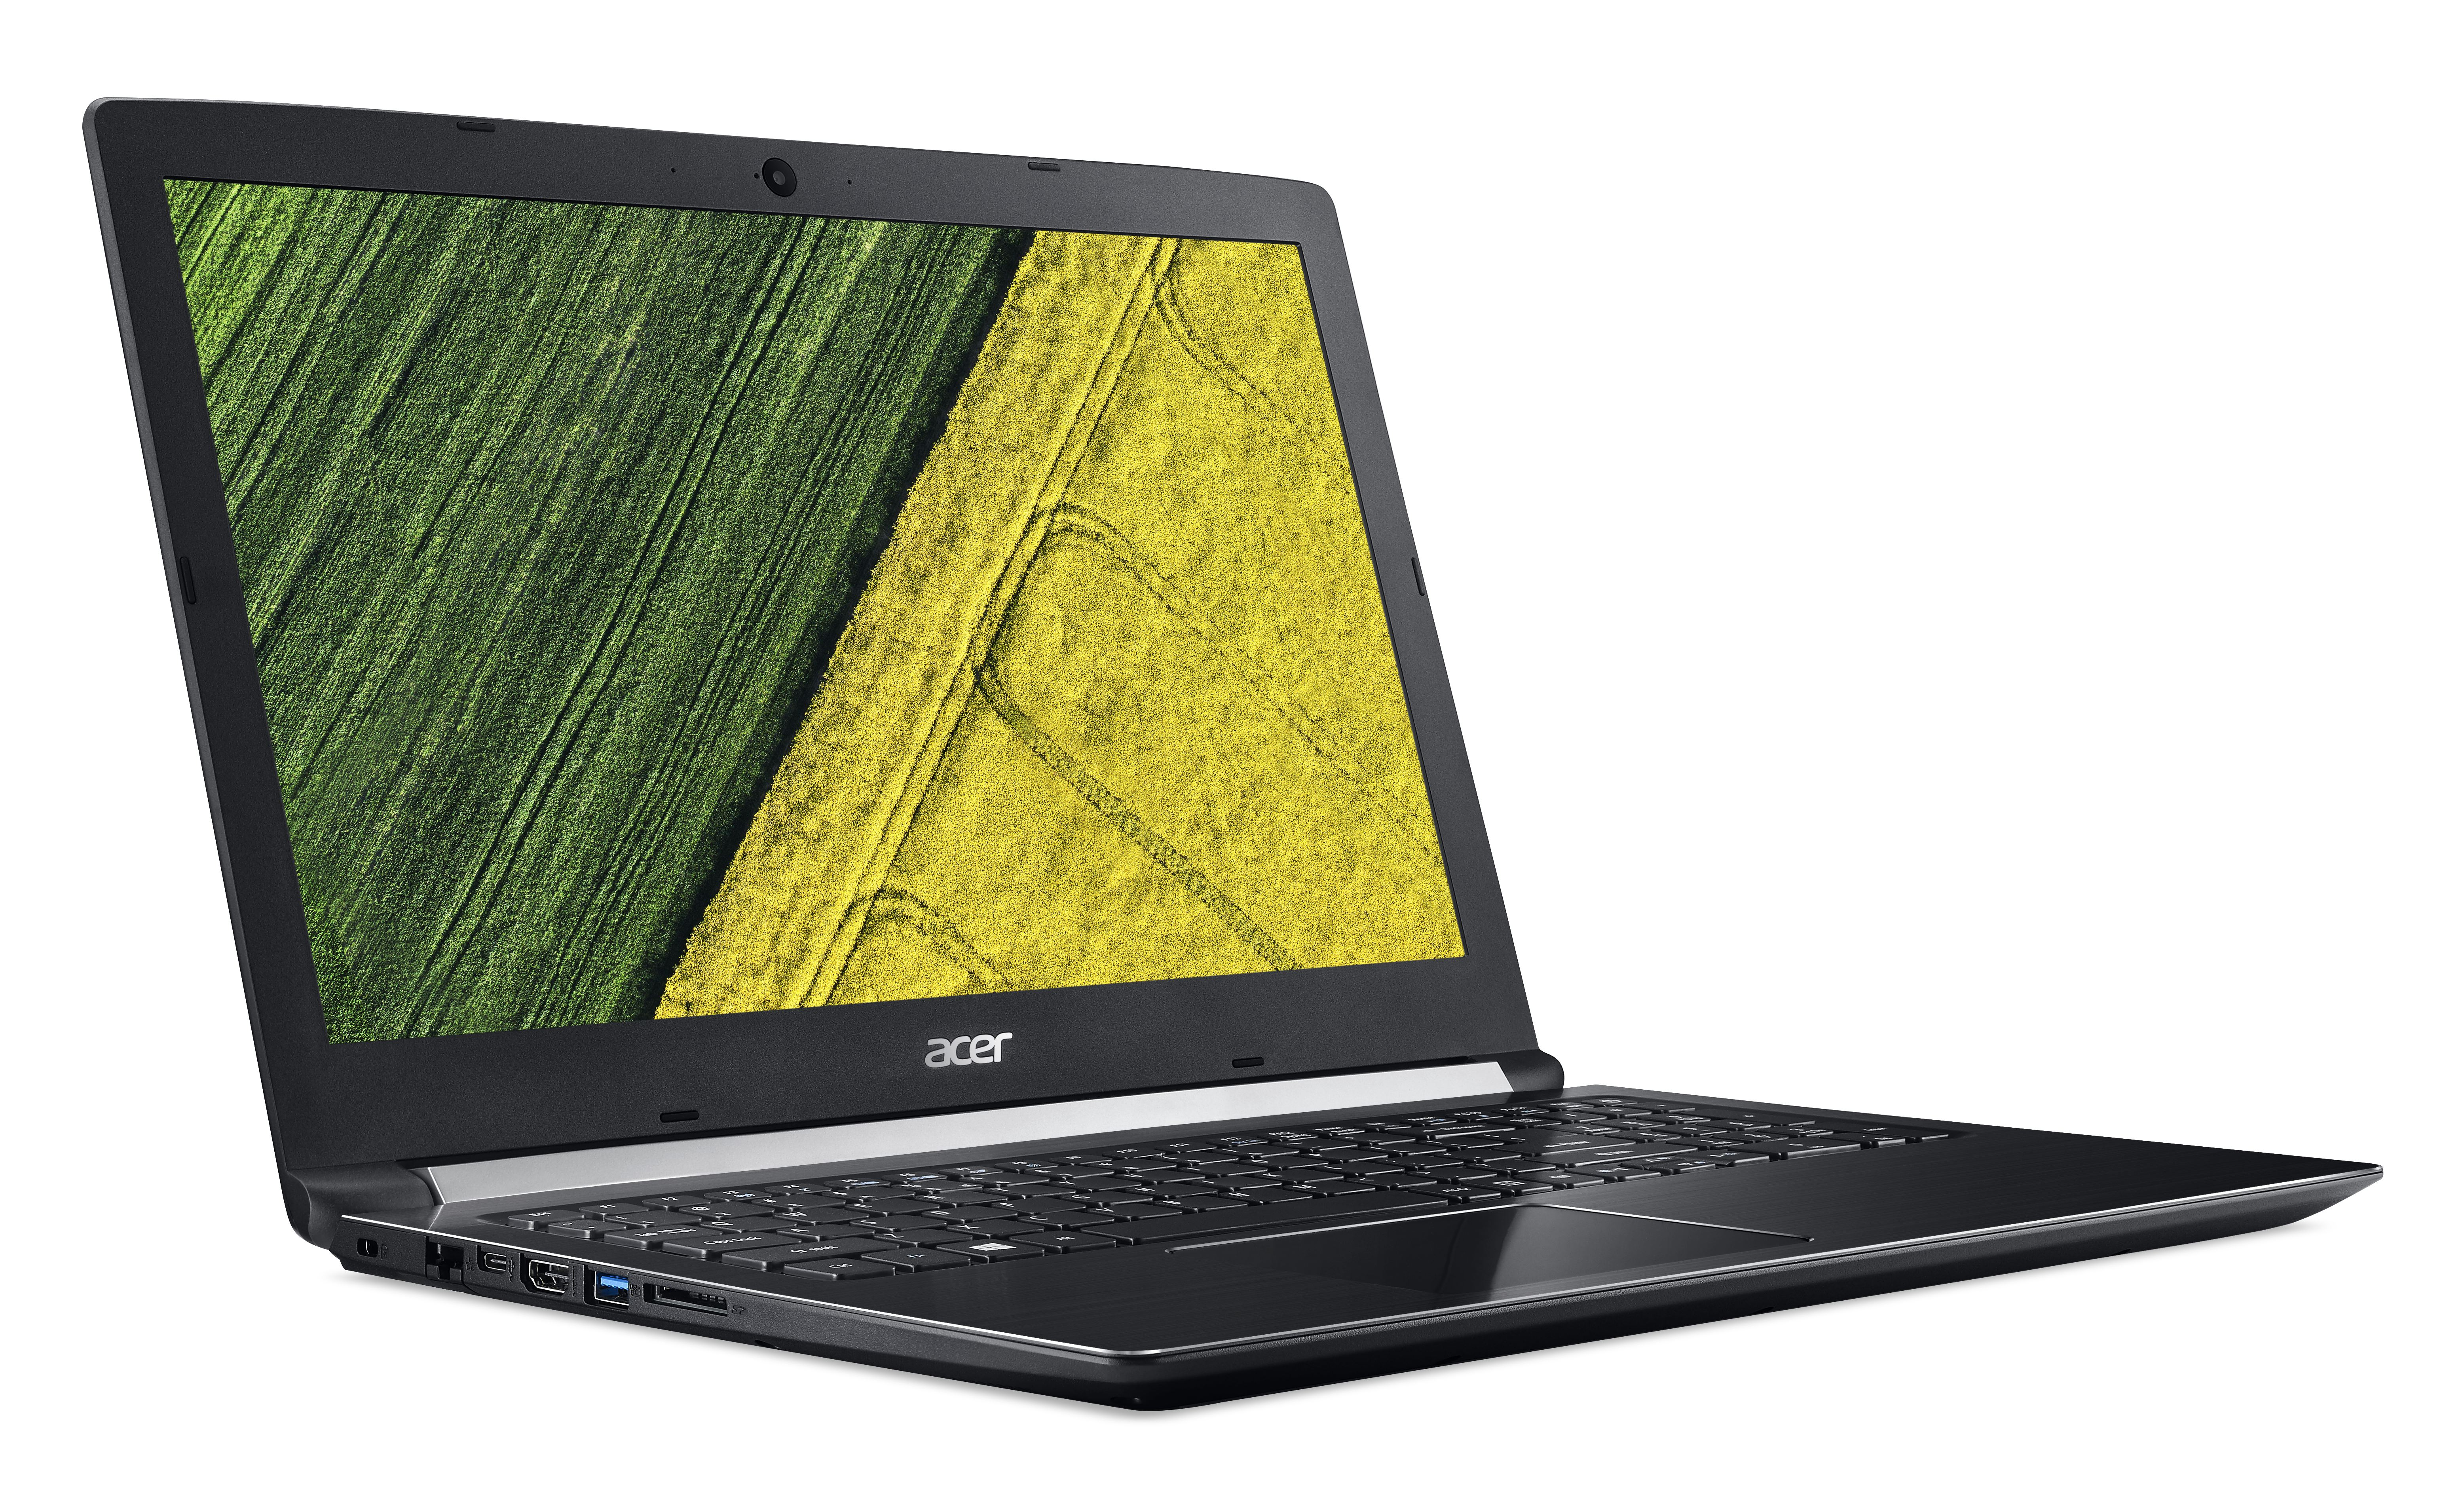 The Acer Aspire 5